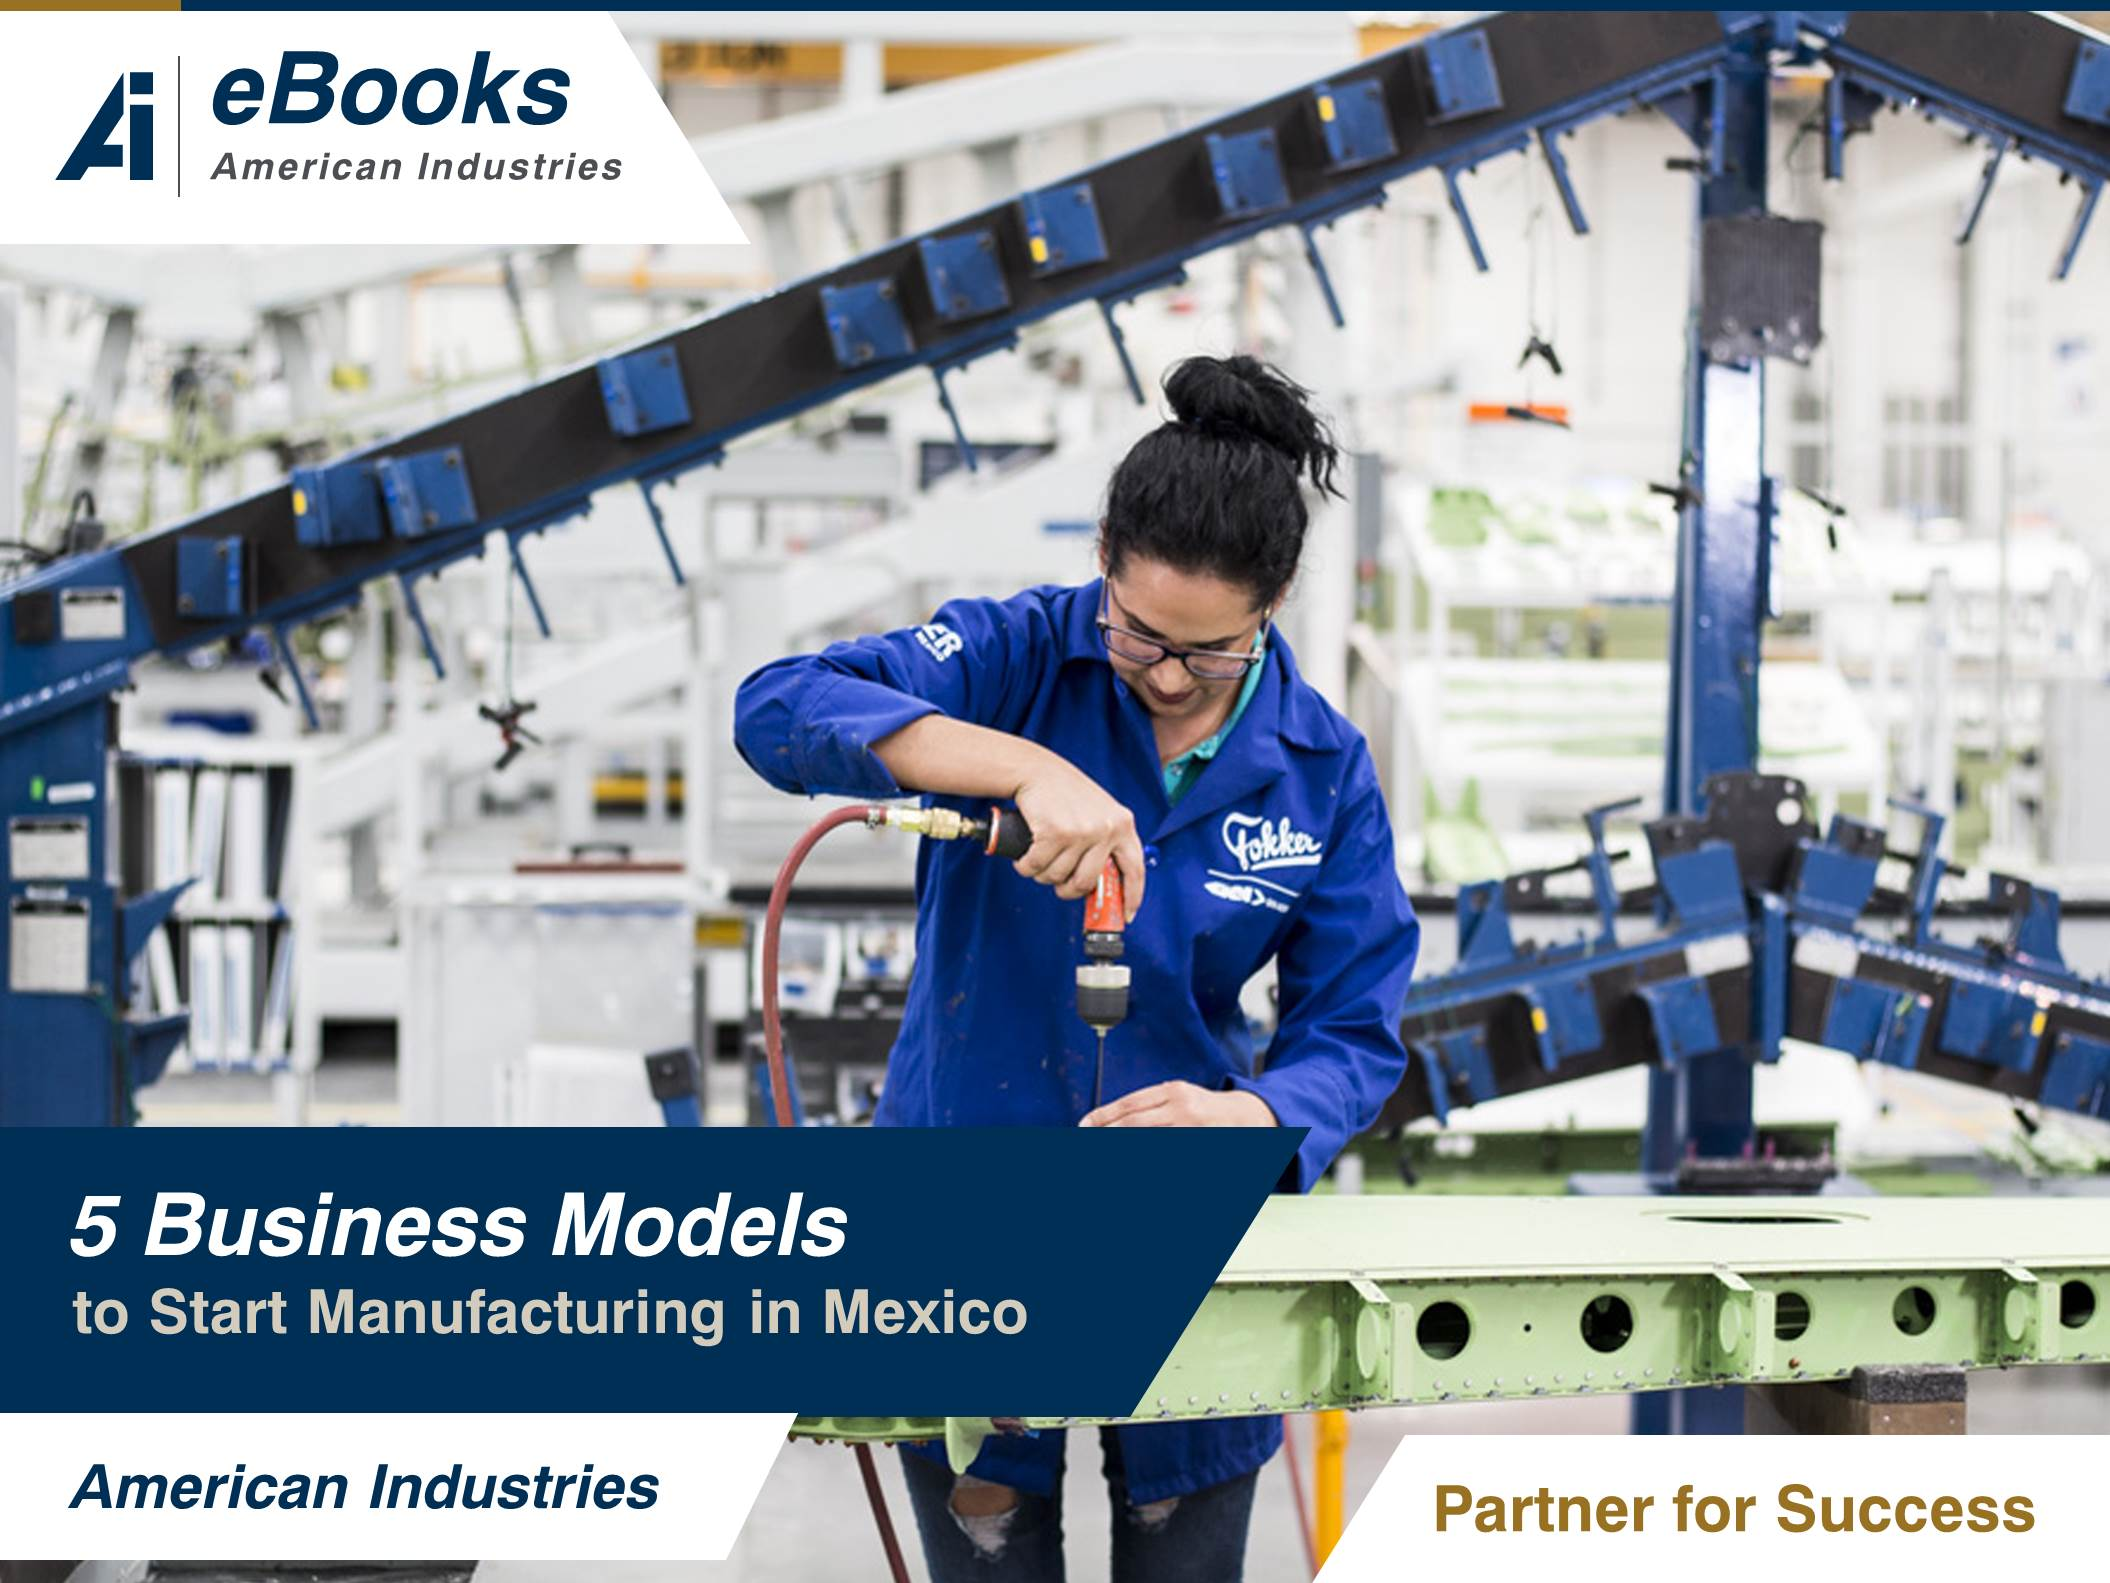 5 business models to start manufacturing in Mexico